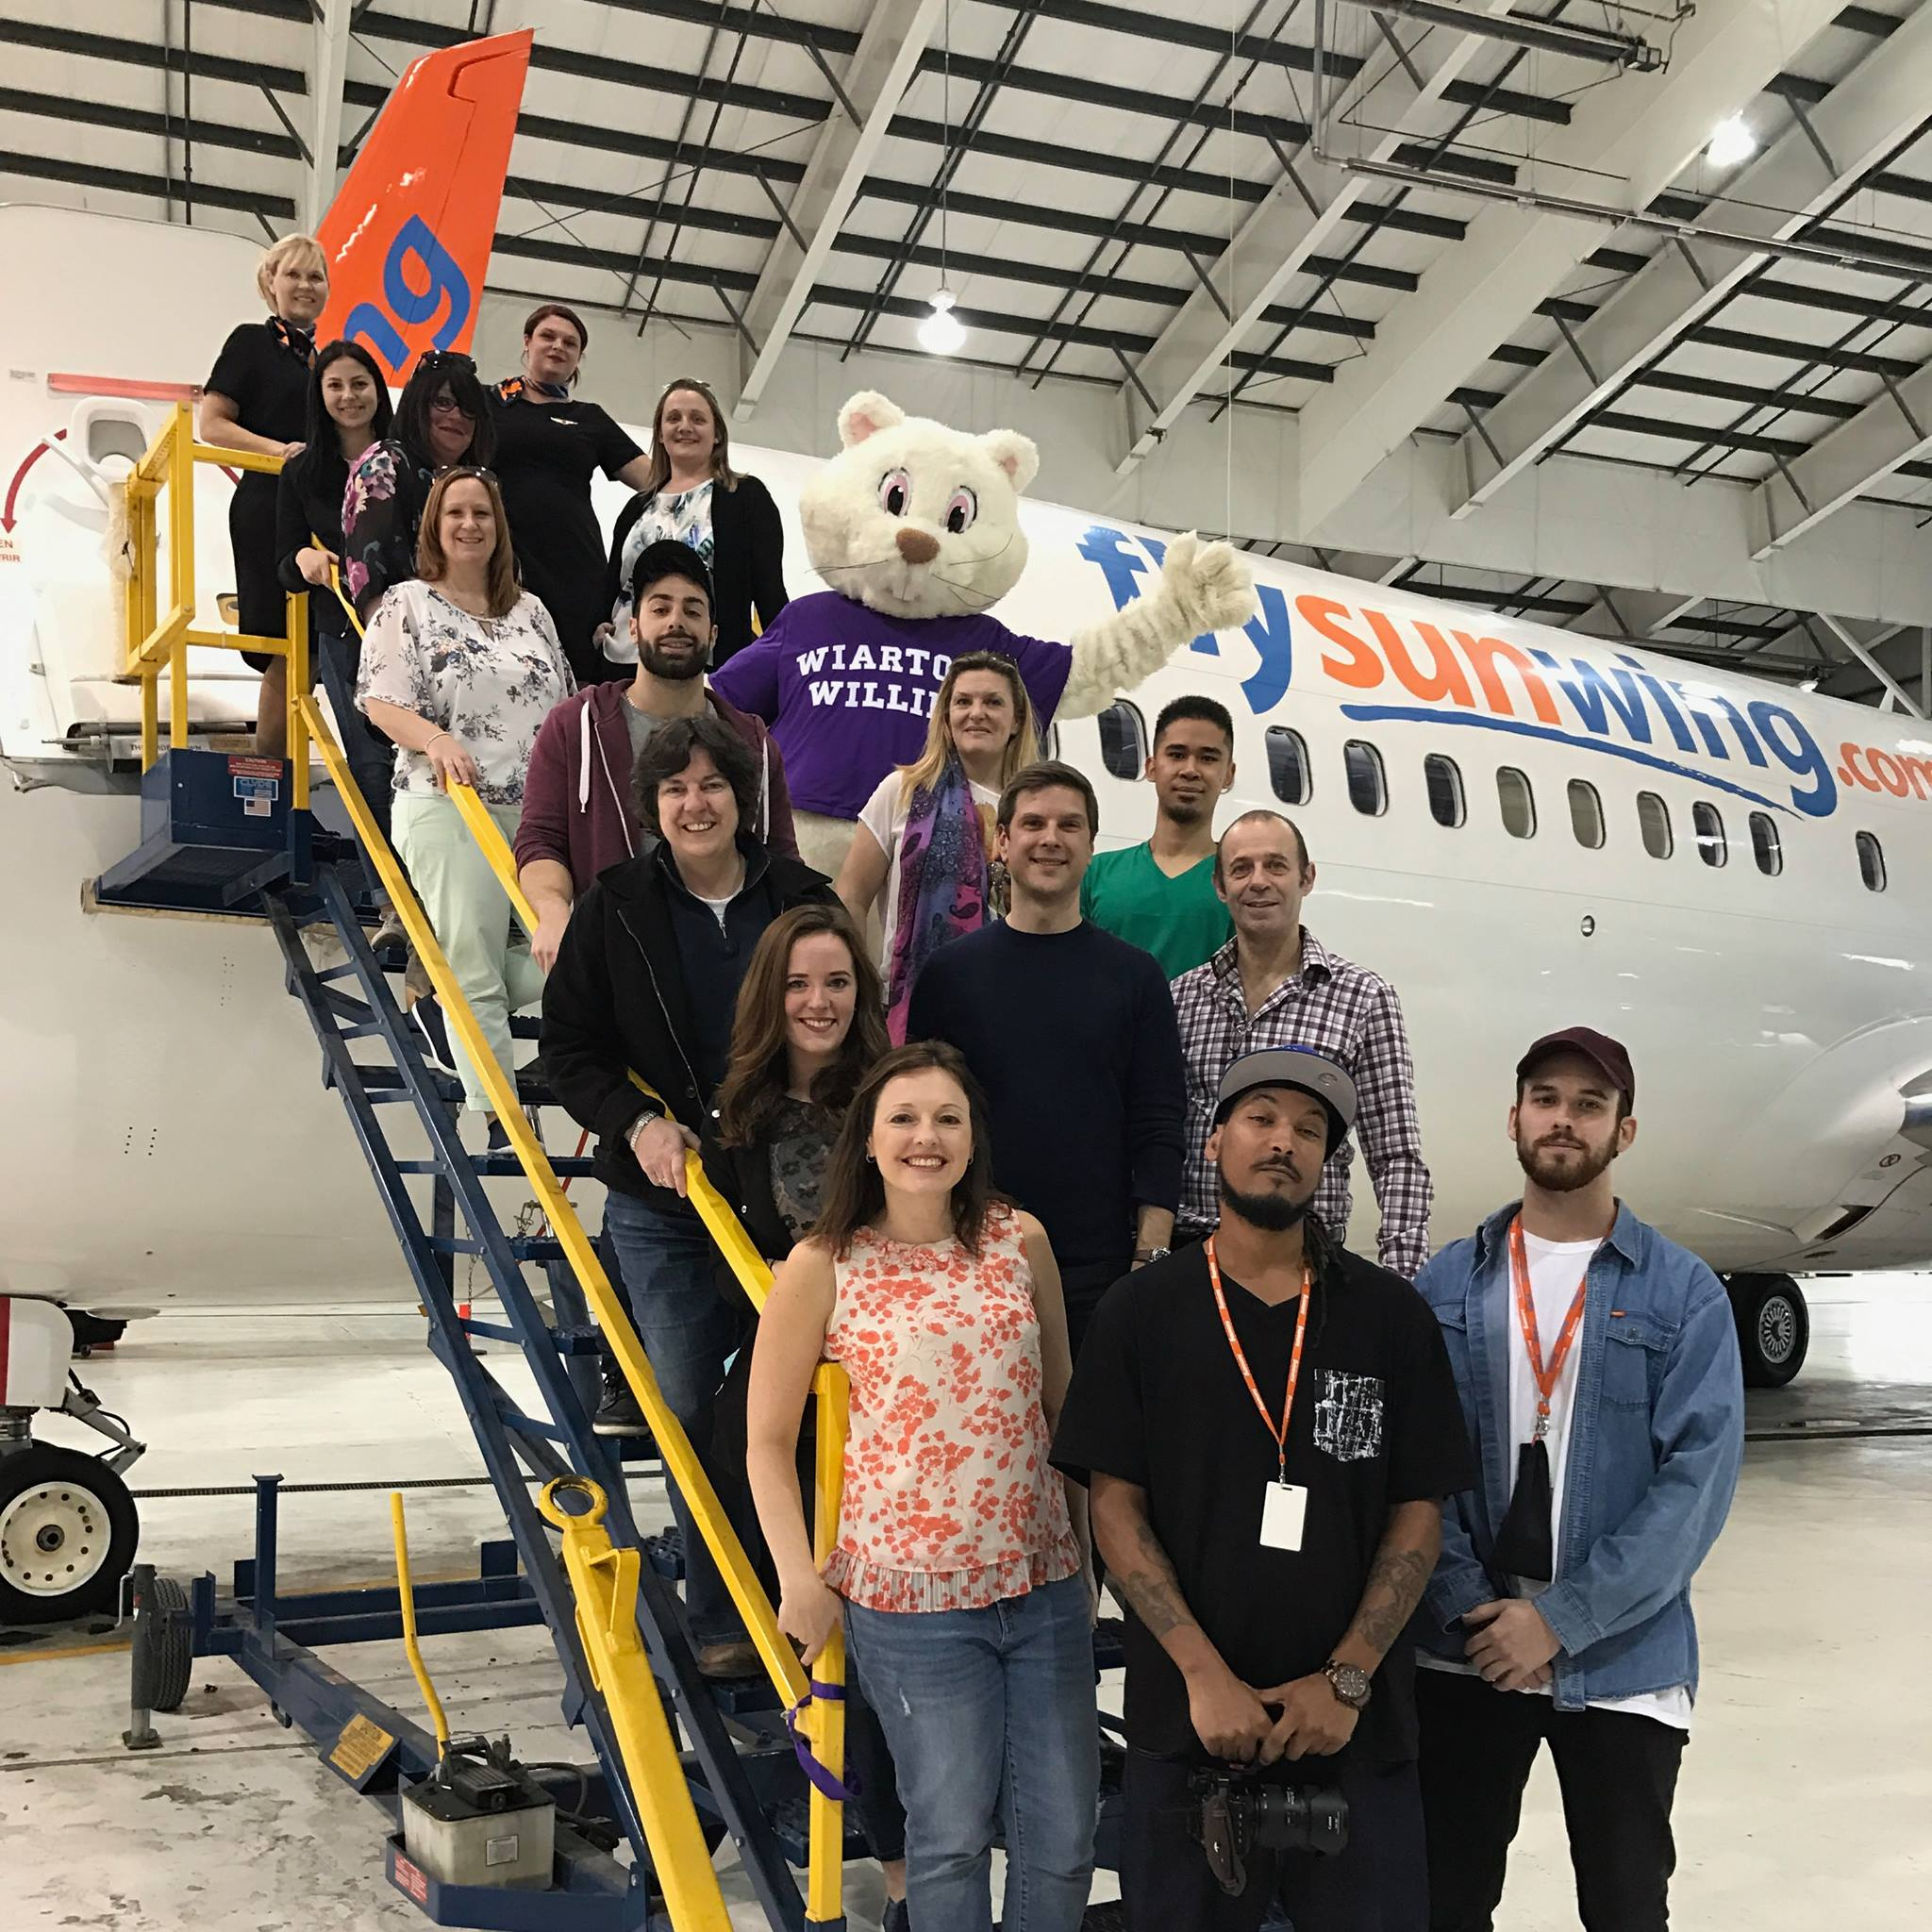 VMC-Media-Sunwing-Wiarton-Willie-Commercial-Shoot